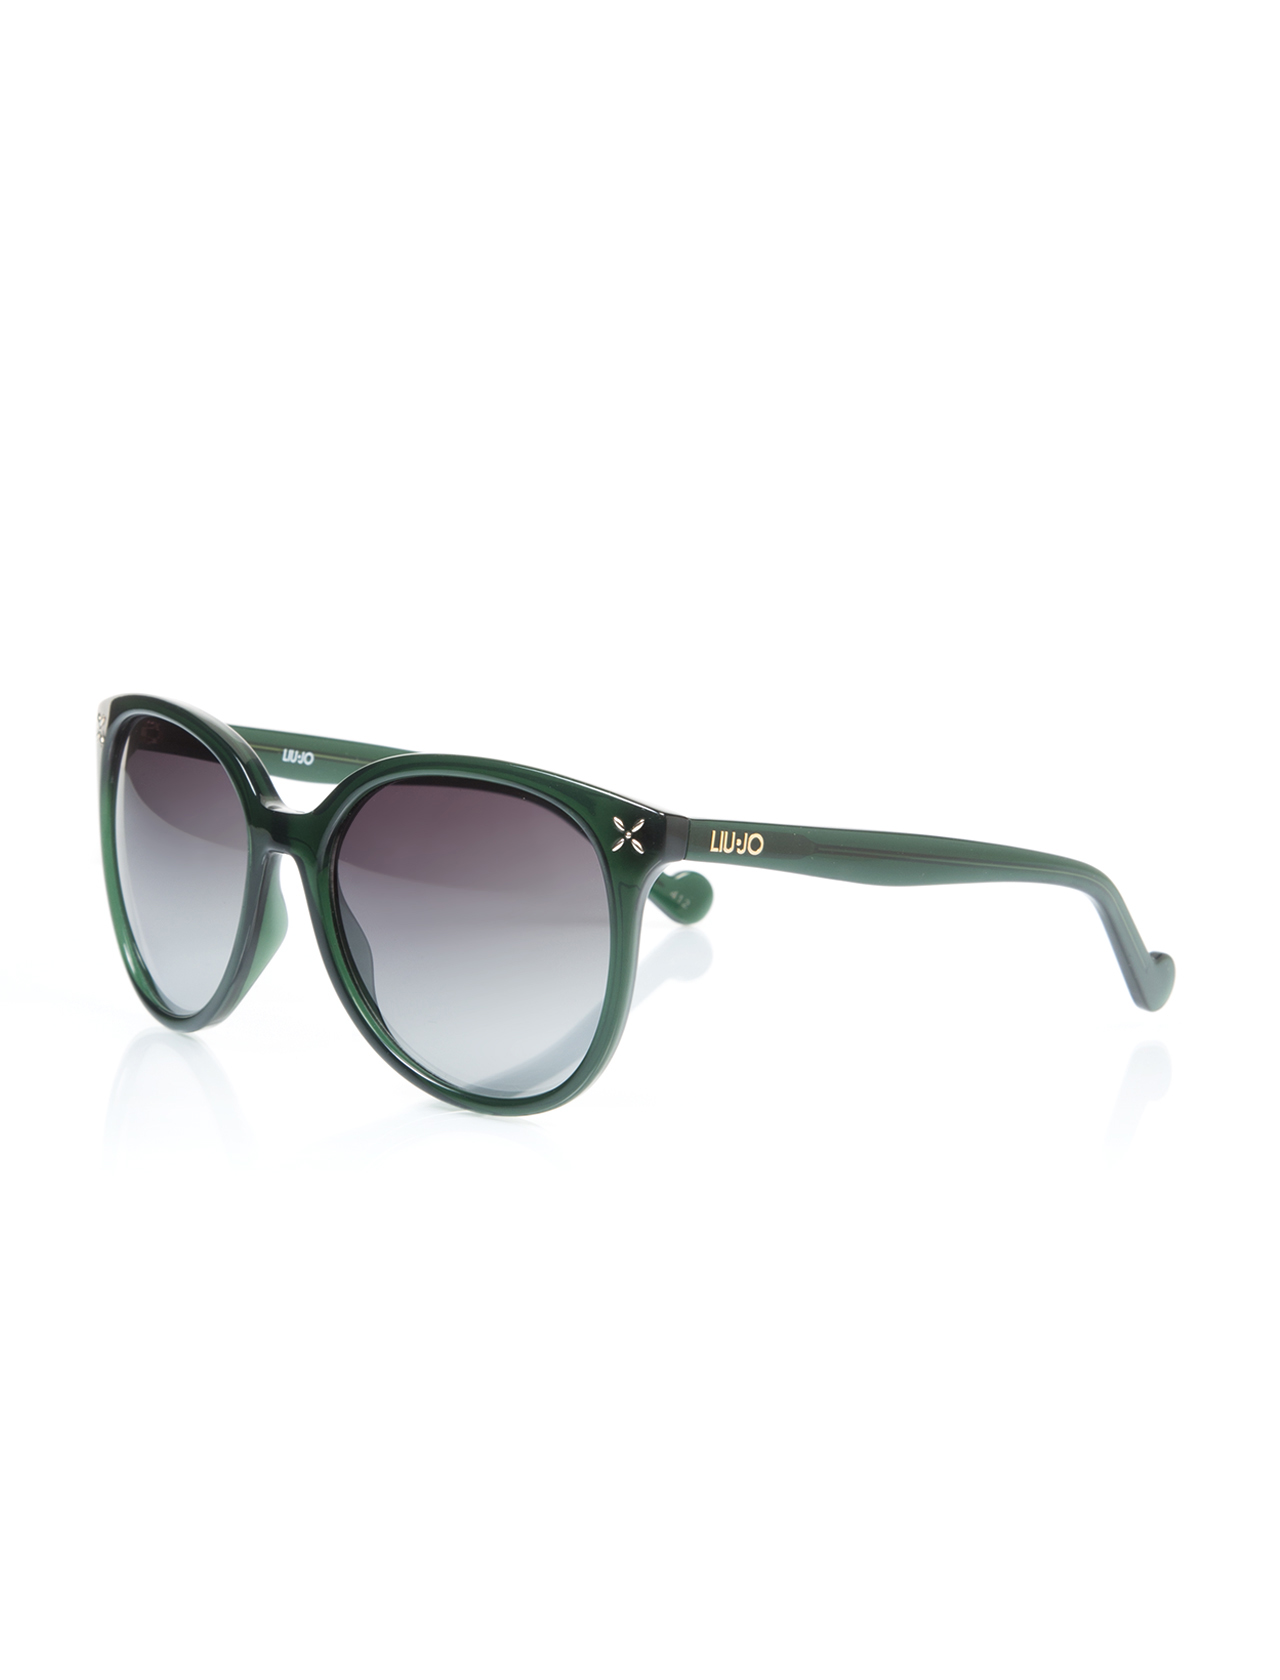 Women's sunglasses lj 619 303 bone green organic oval aval 56-18-135 liu jo